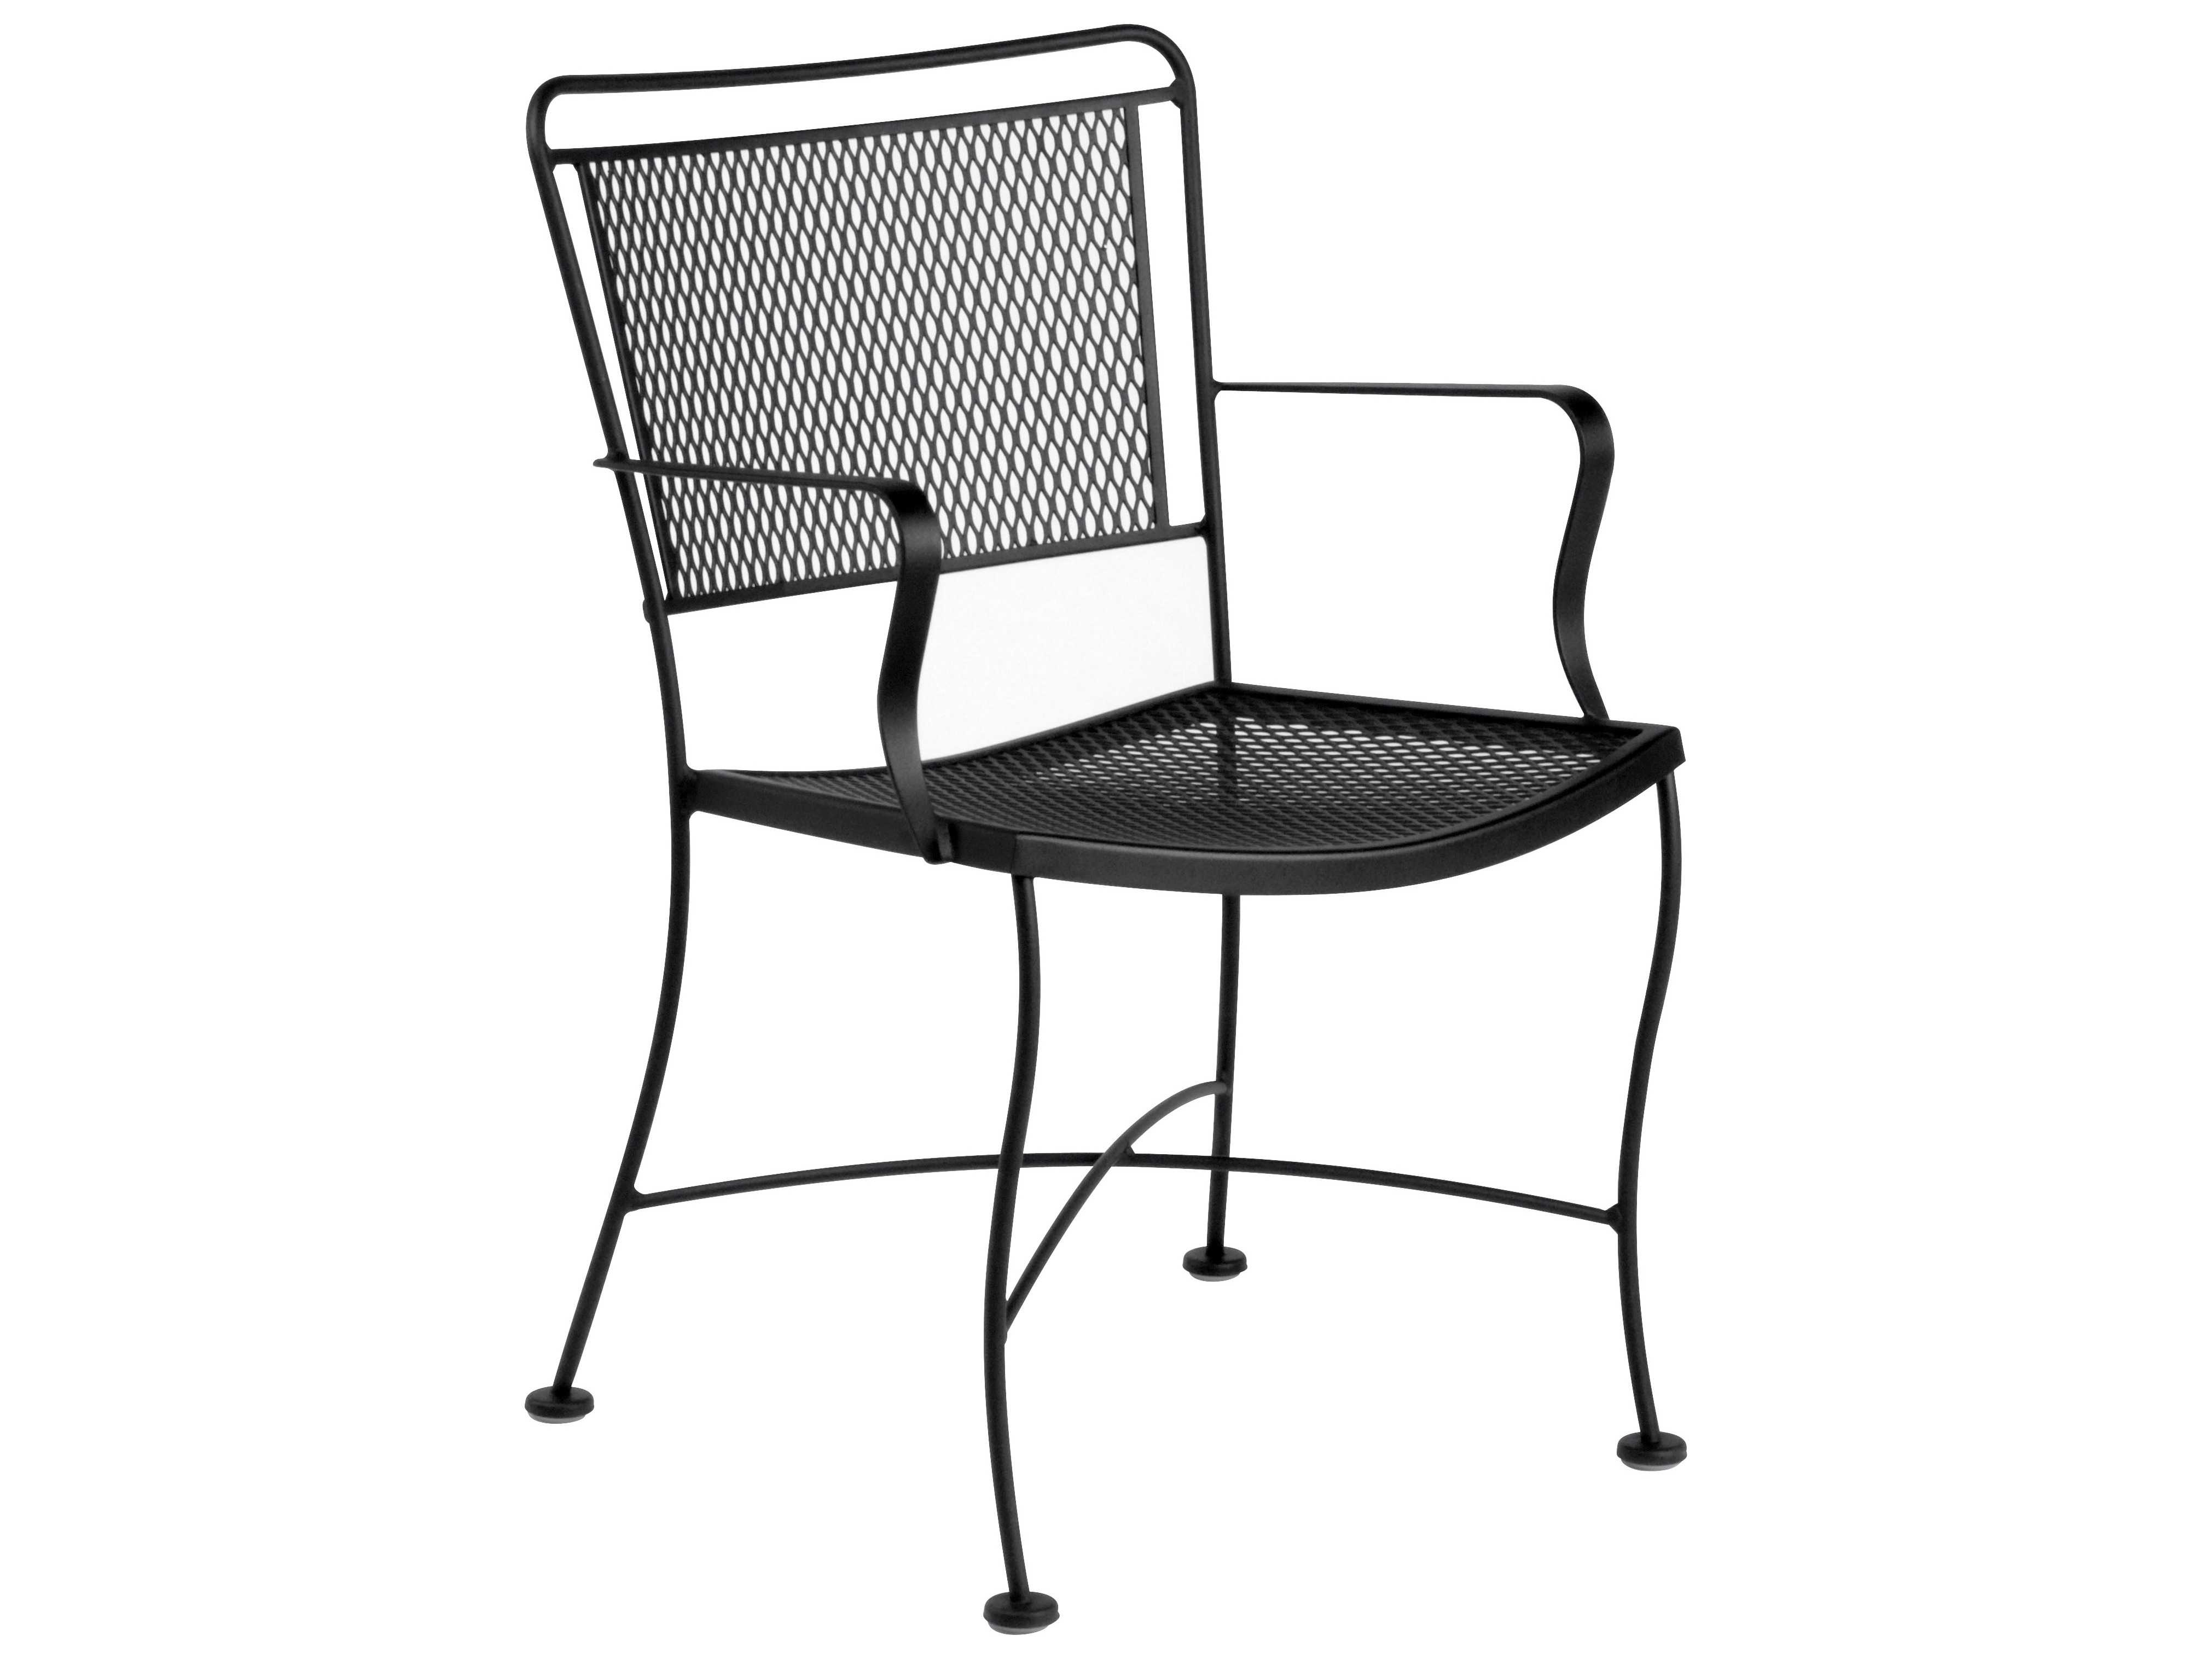 Wrought Iron Barrel Chair Outdoor Cushions: Woodard Constantine Wrought Iron Dining Chair